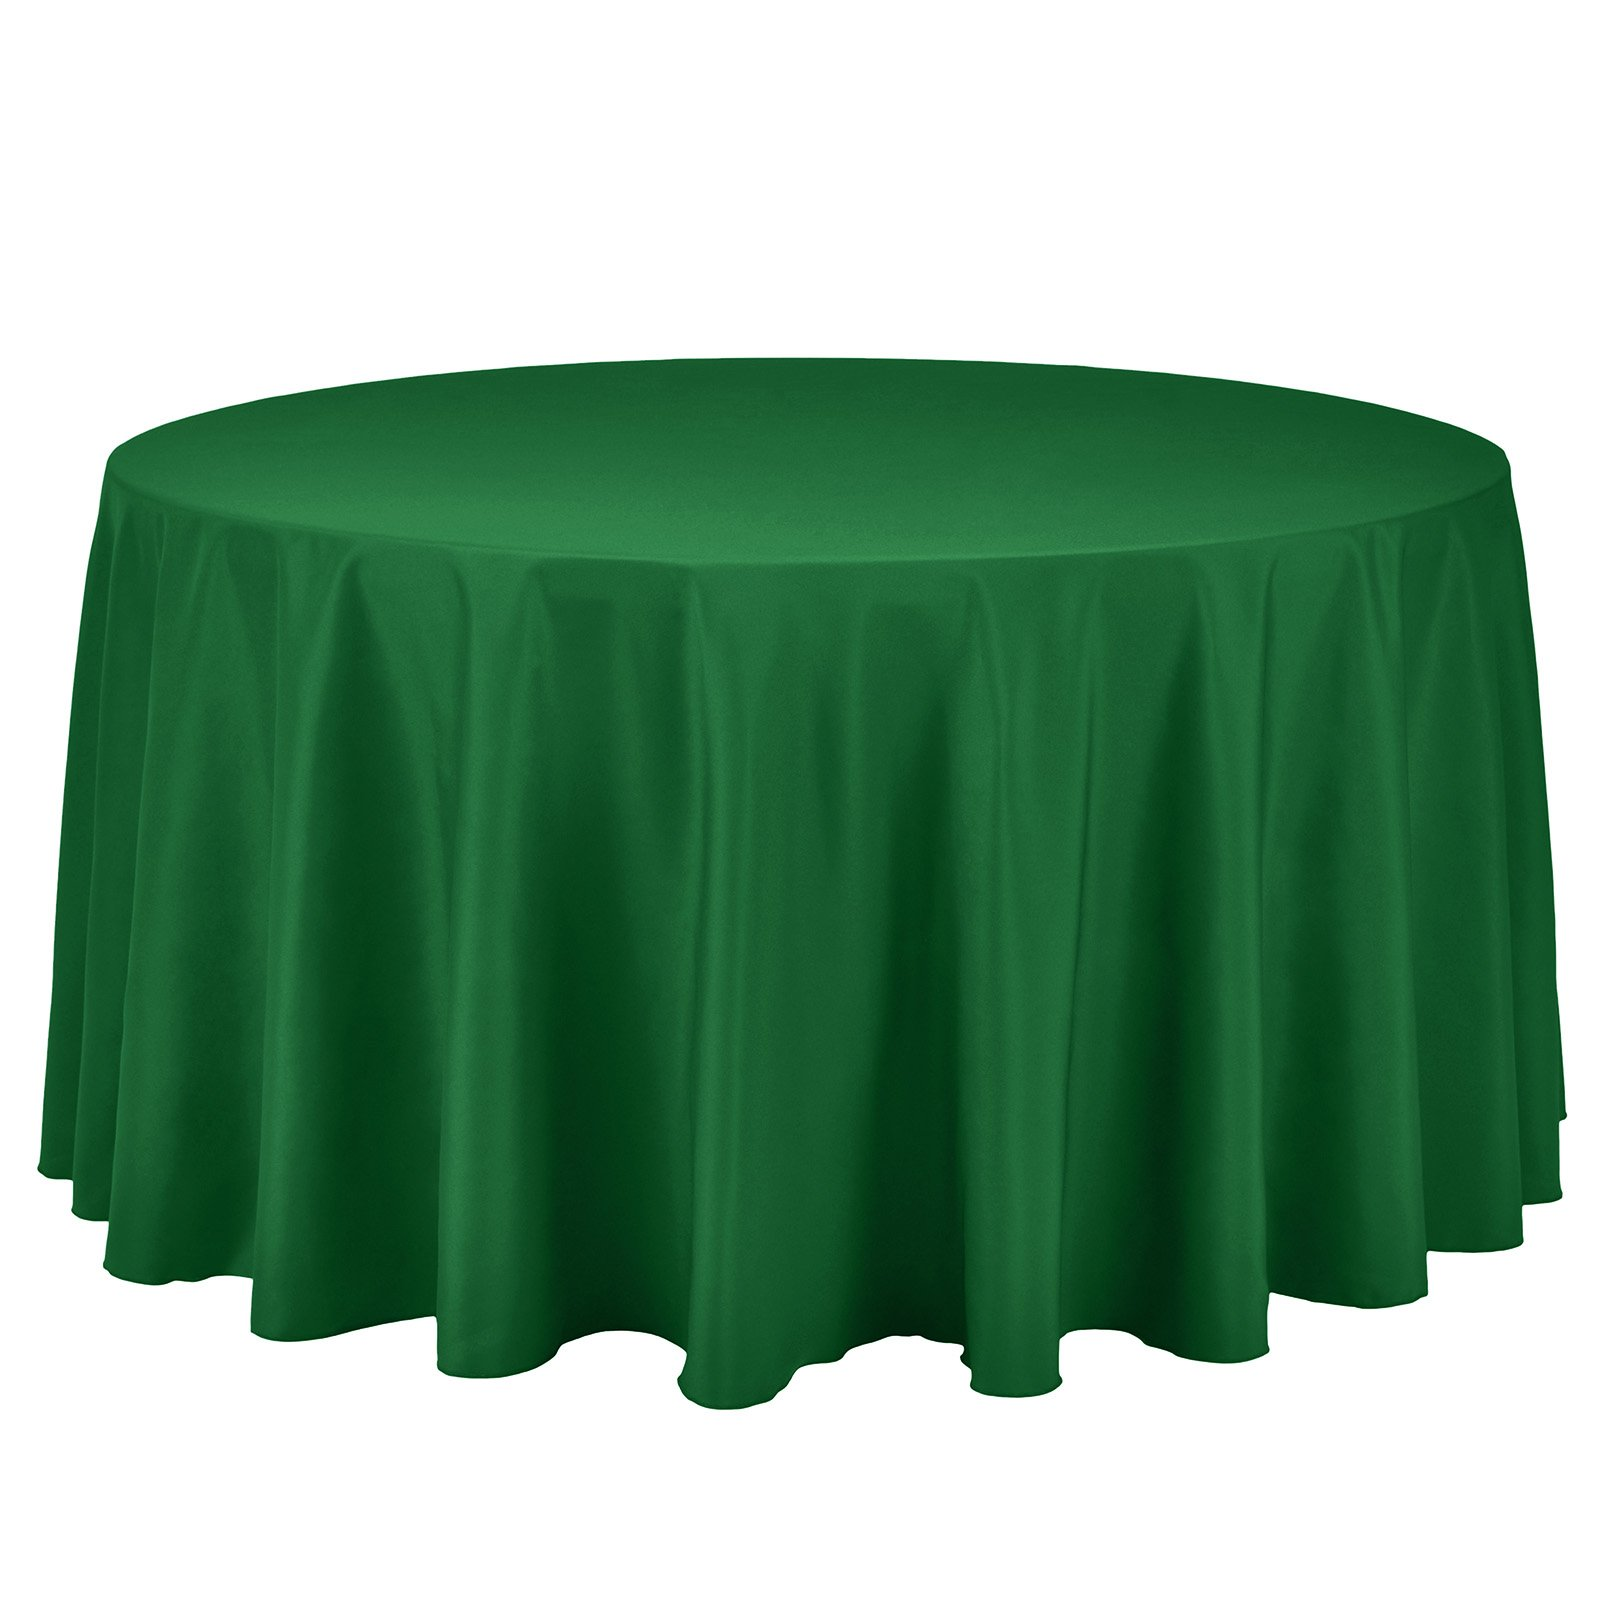 Remedios Round Tablecloth Solid Color Polyester Table Cloth for Bridal Shower Wedding Table – Wrinkle Free Dinner Tablecloth for Restaurant Party Banquet (Green, 108 inch)